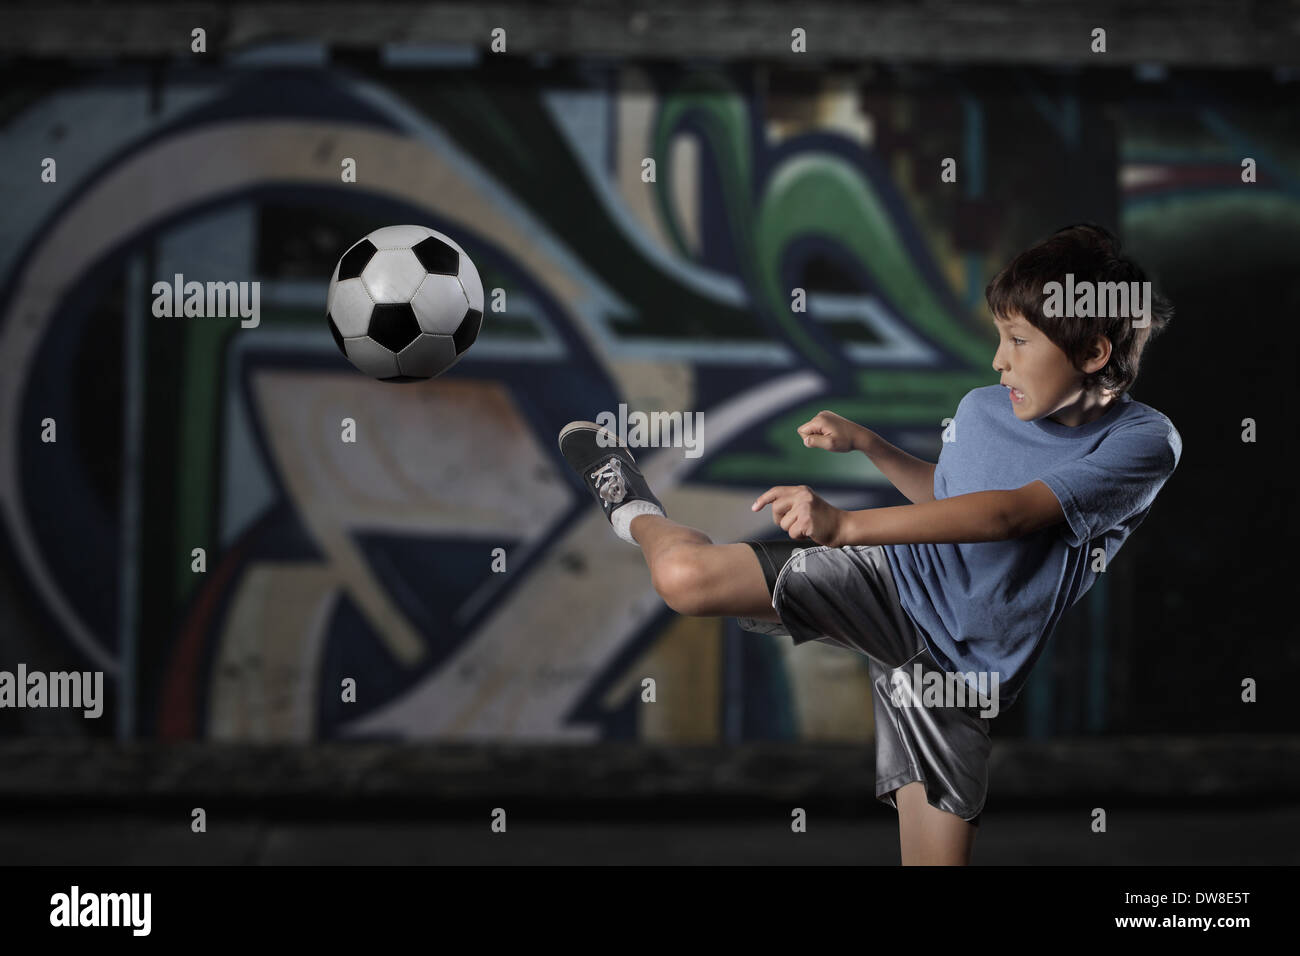 A young boy plays street soccer against a graffiti covered wall - with dramatic lighting and subdued colors - Stock Image